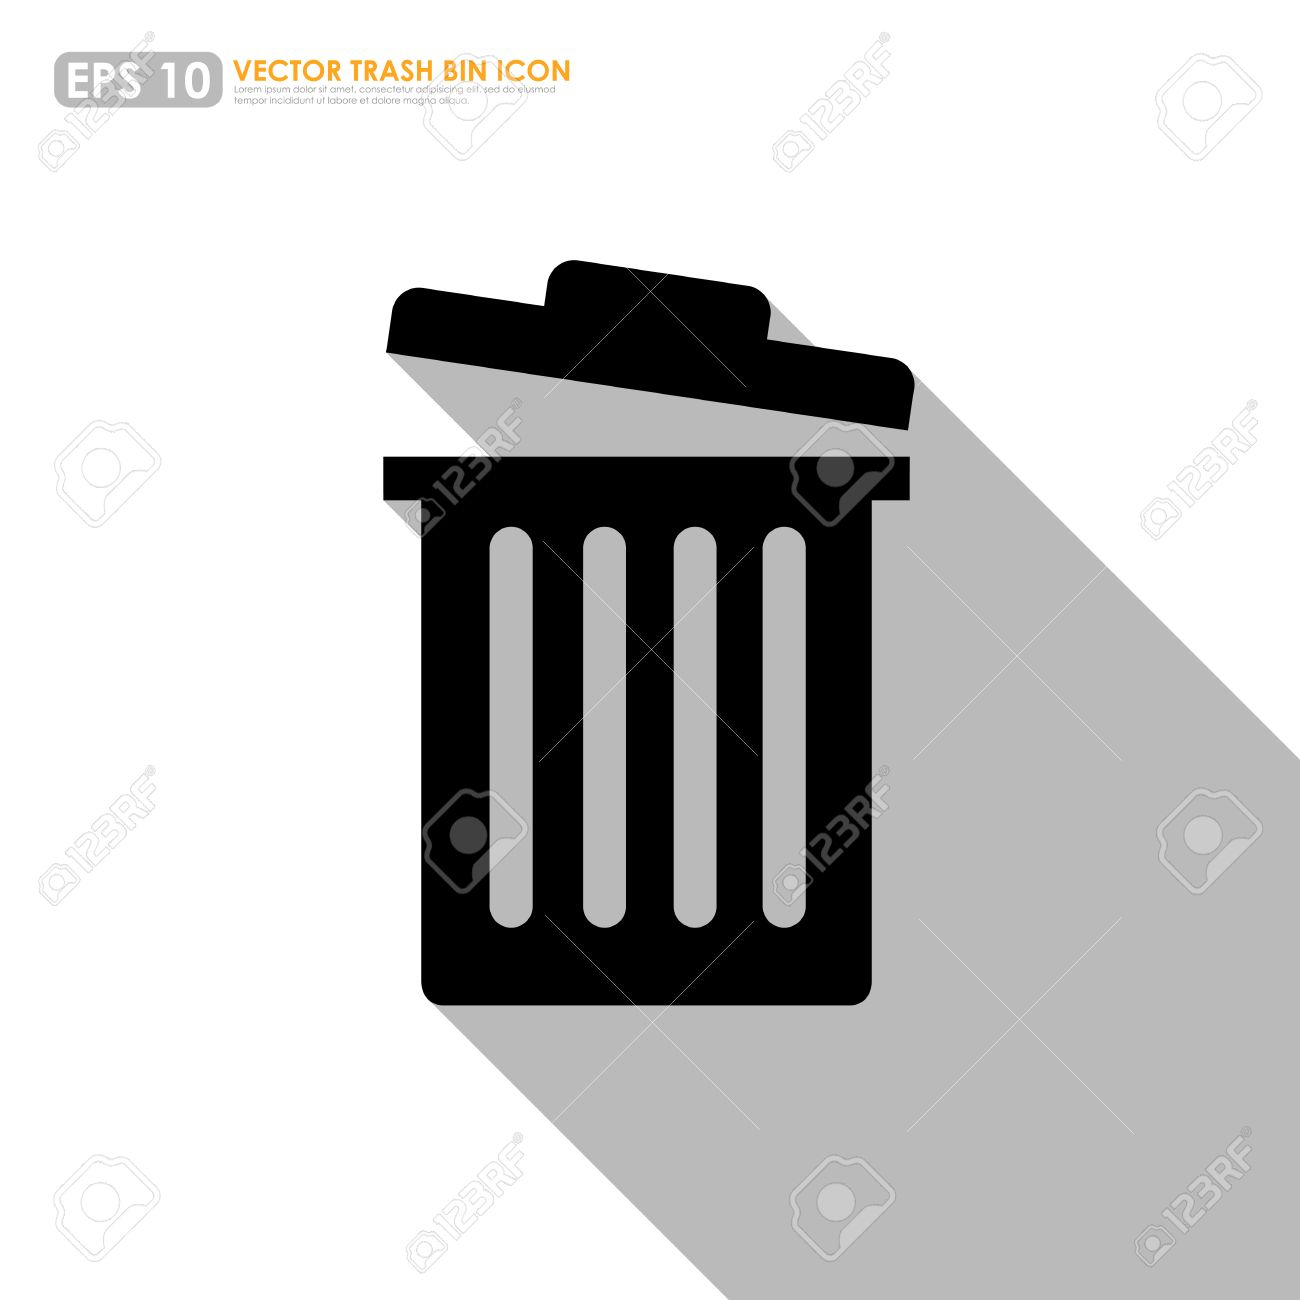 Trash Bin Or Delete Icon On White Background Royalty Free Cliparts ...